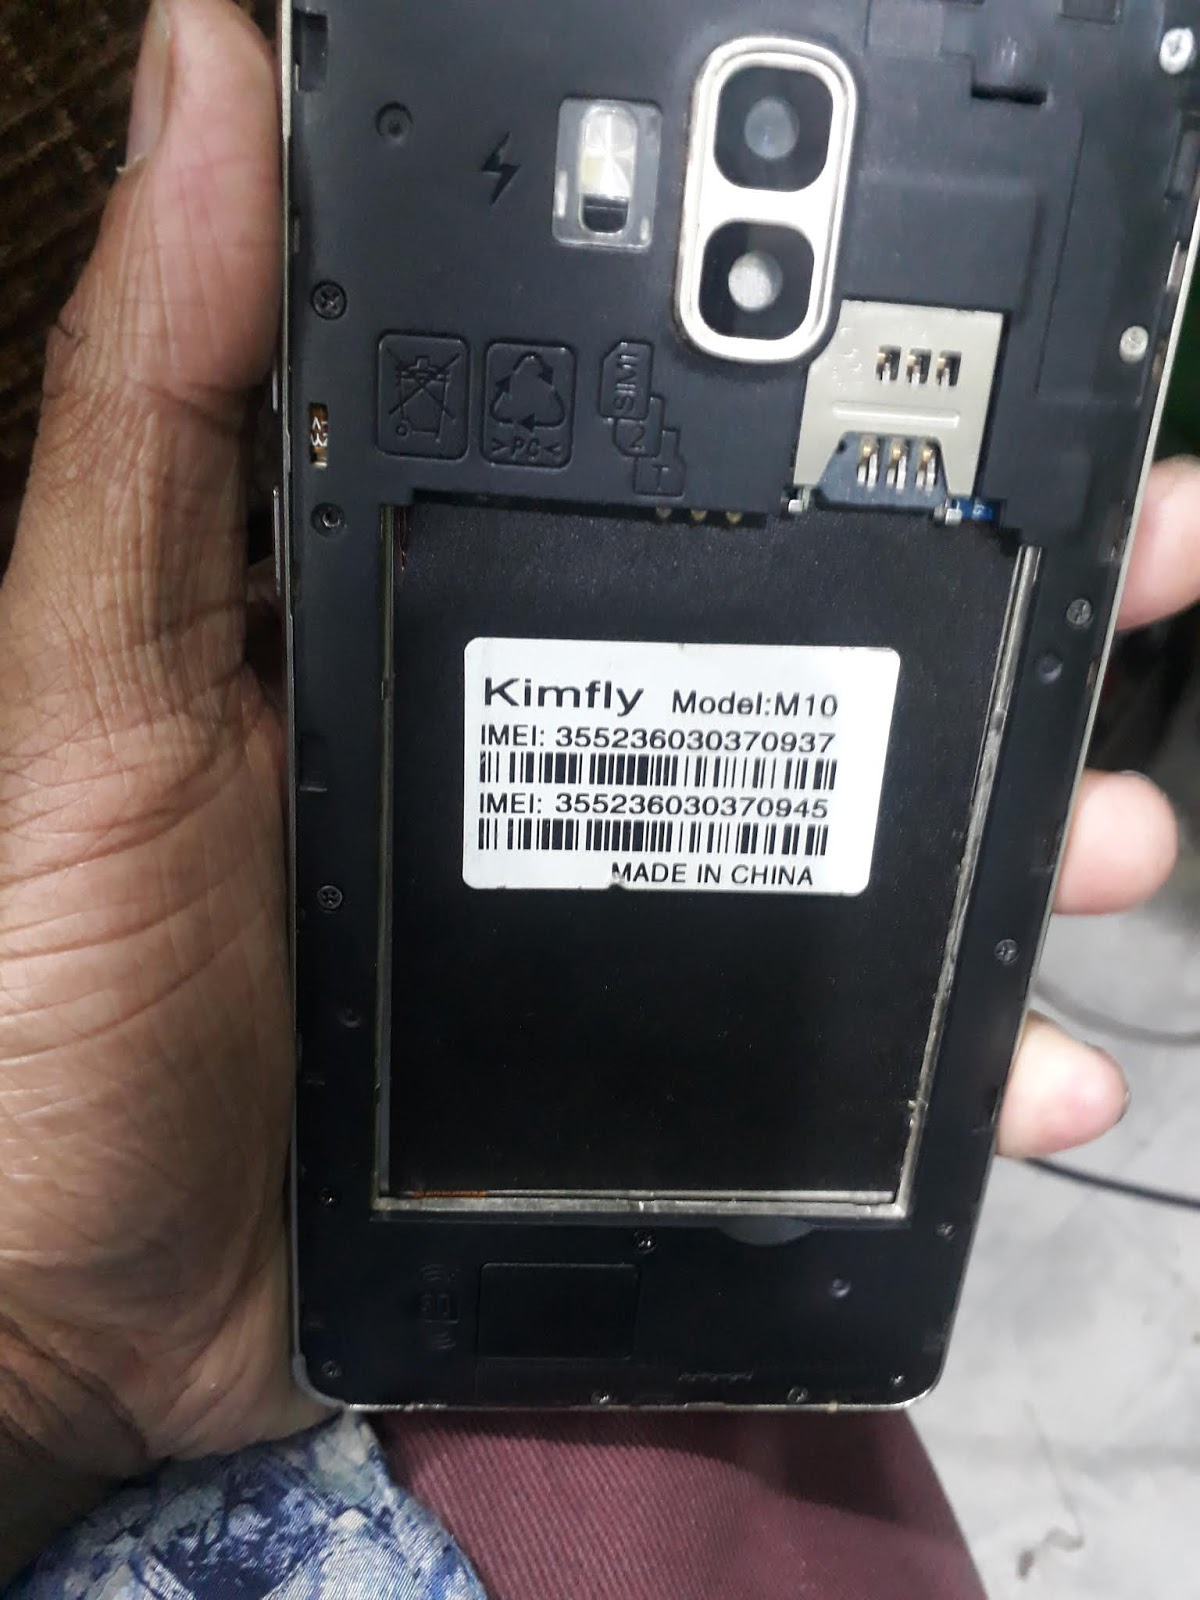 Huawei Clone Kimfly M10/K10 6 0 Flash File MT6580 Firmware 100